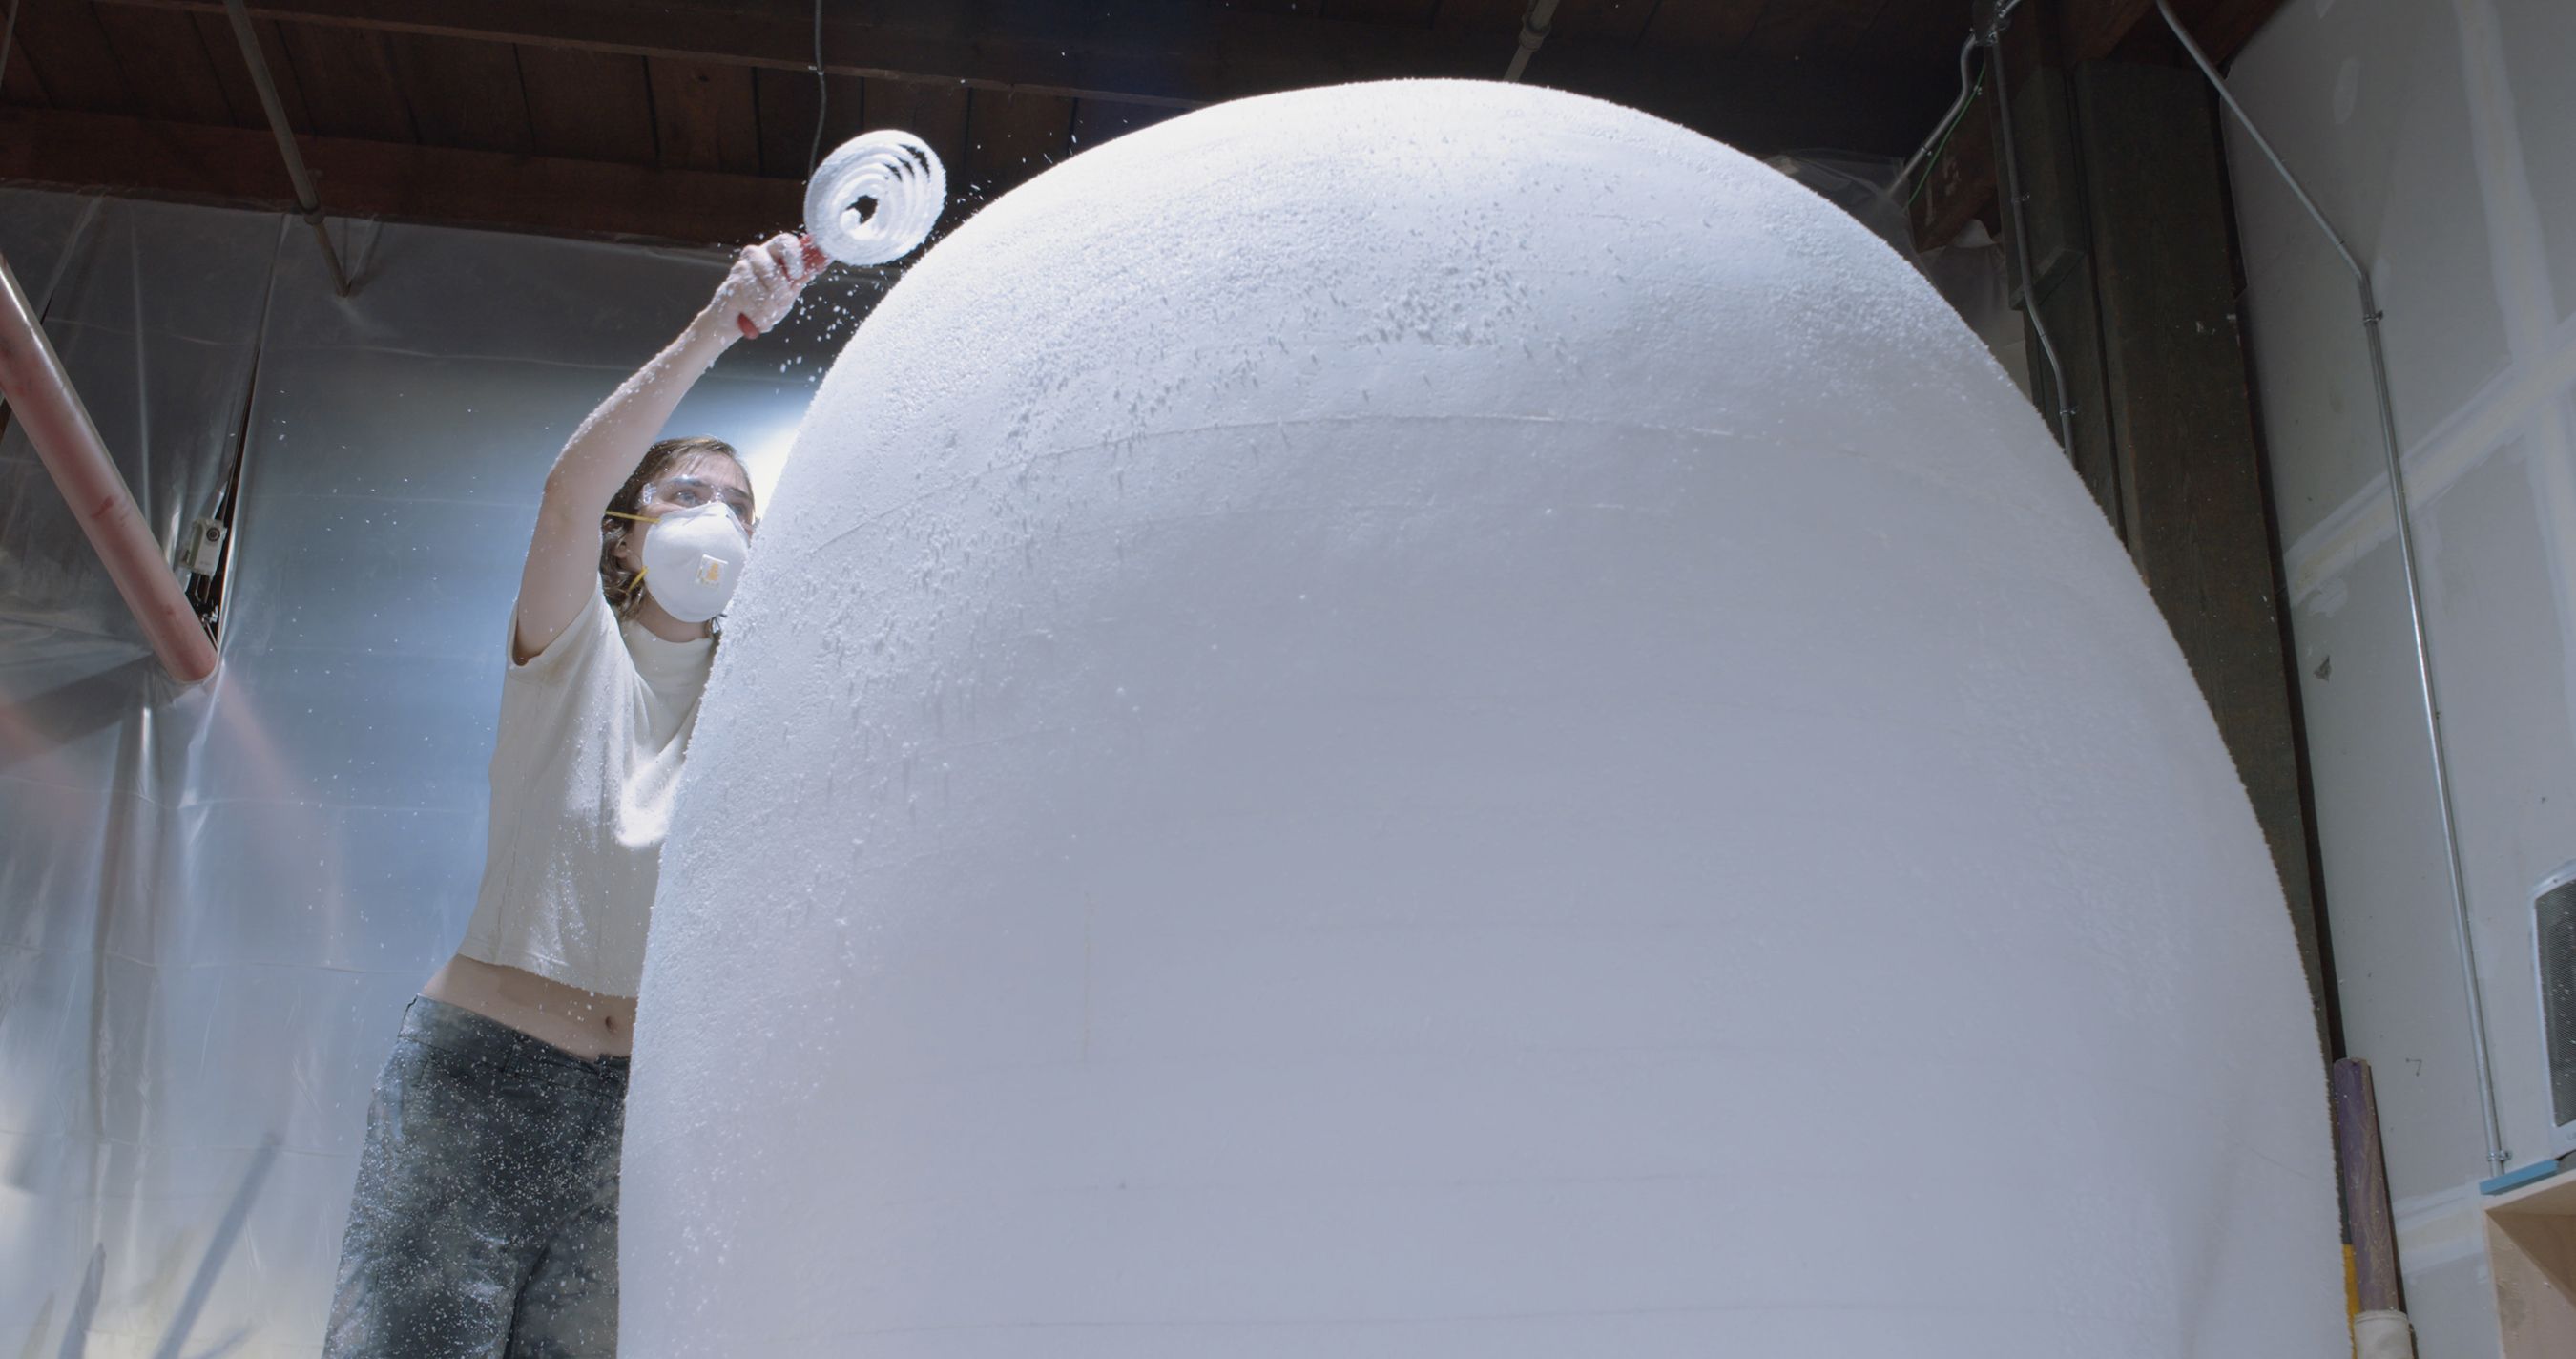 A behind the scenes look of Dan Lam's blob-like sculptures in the making.